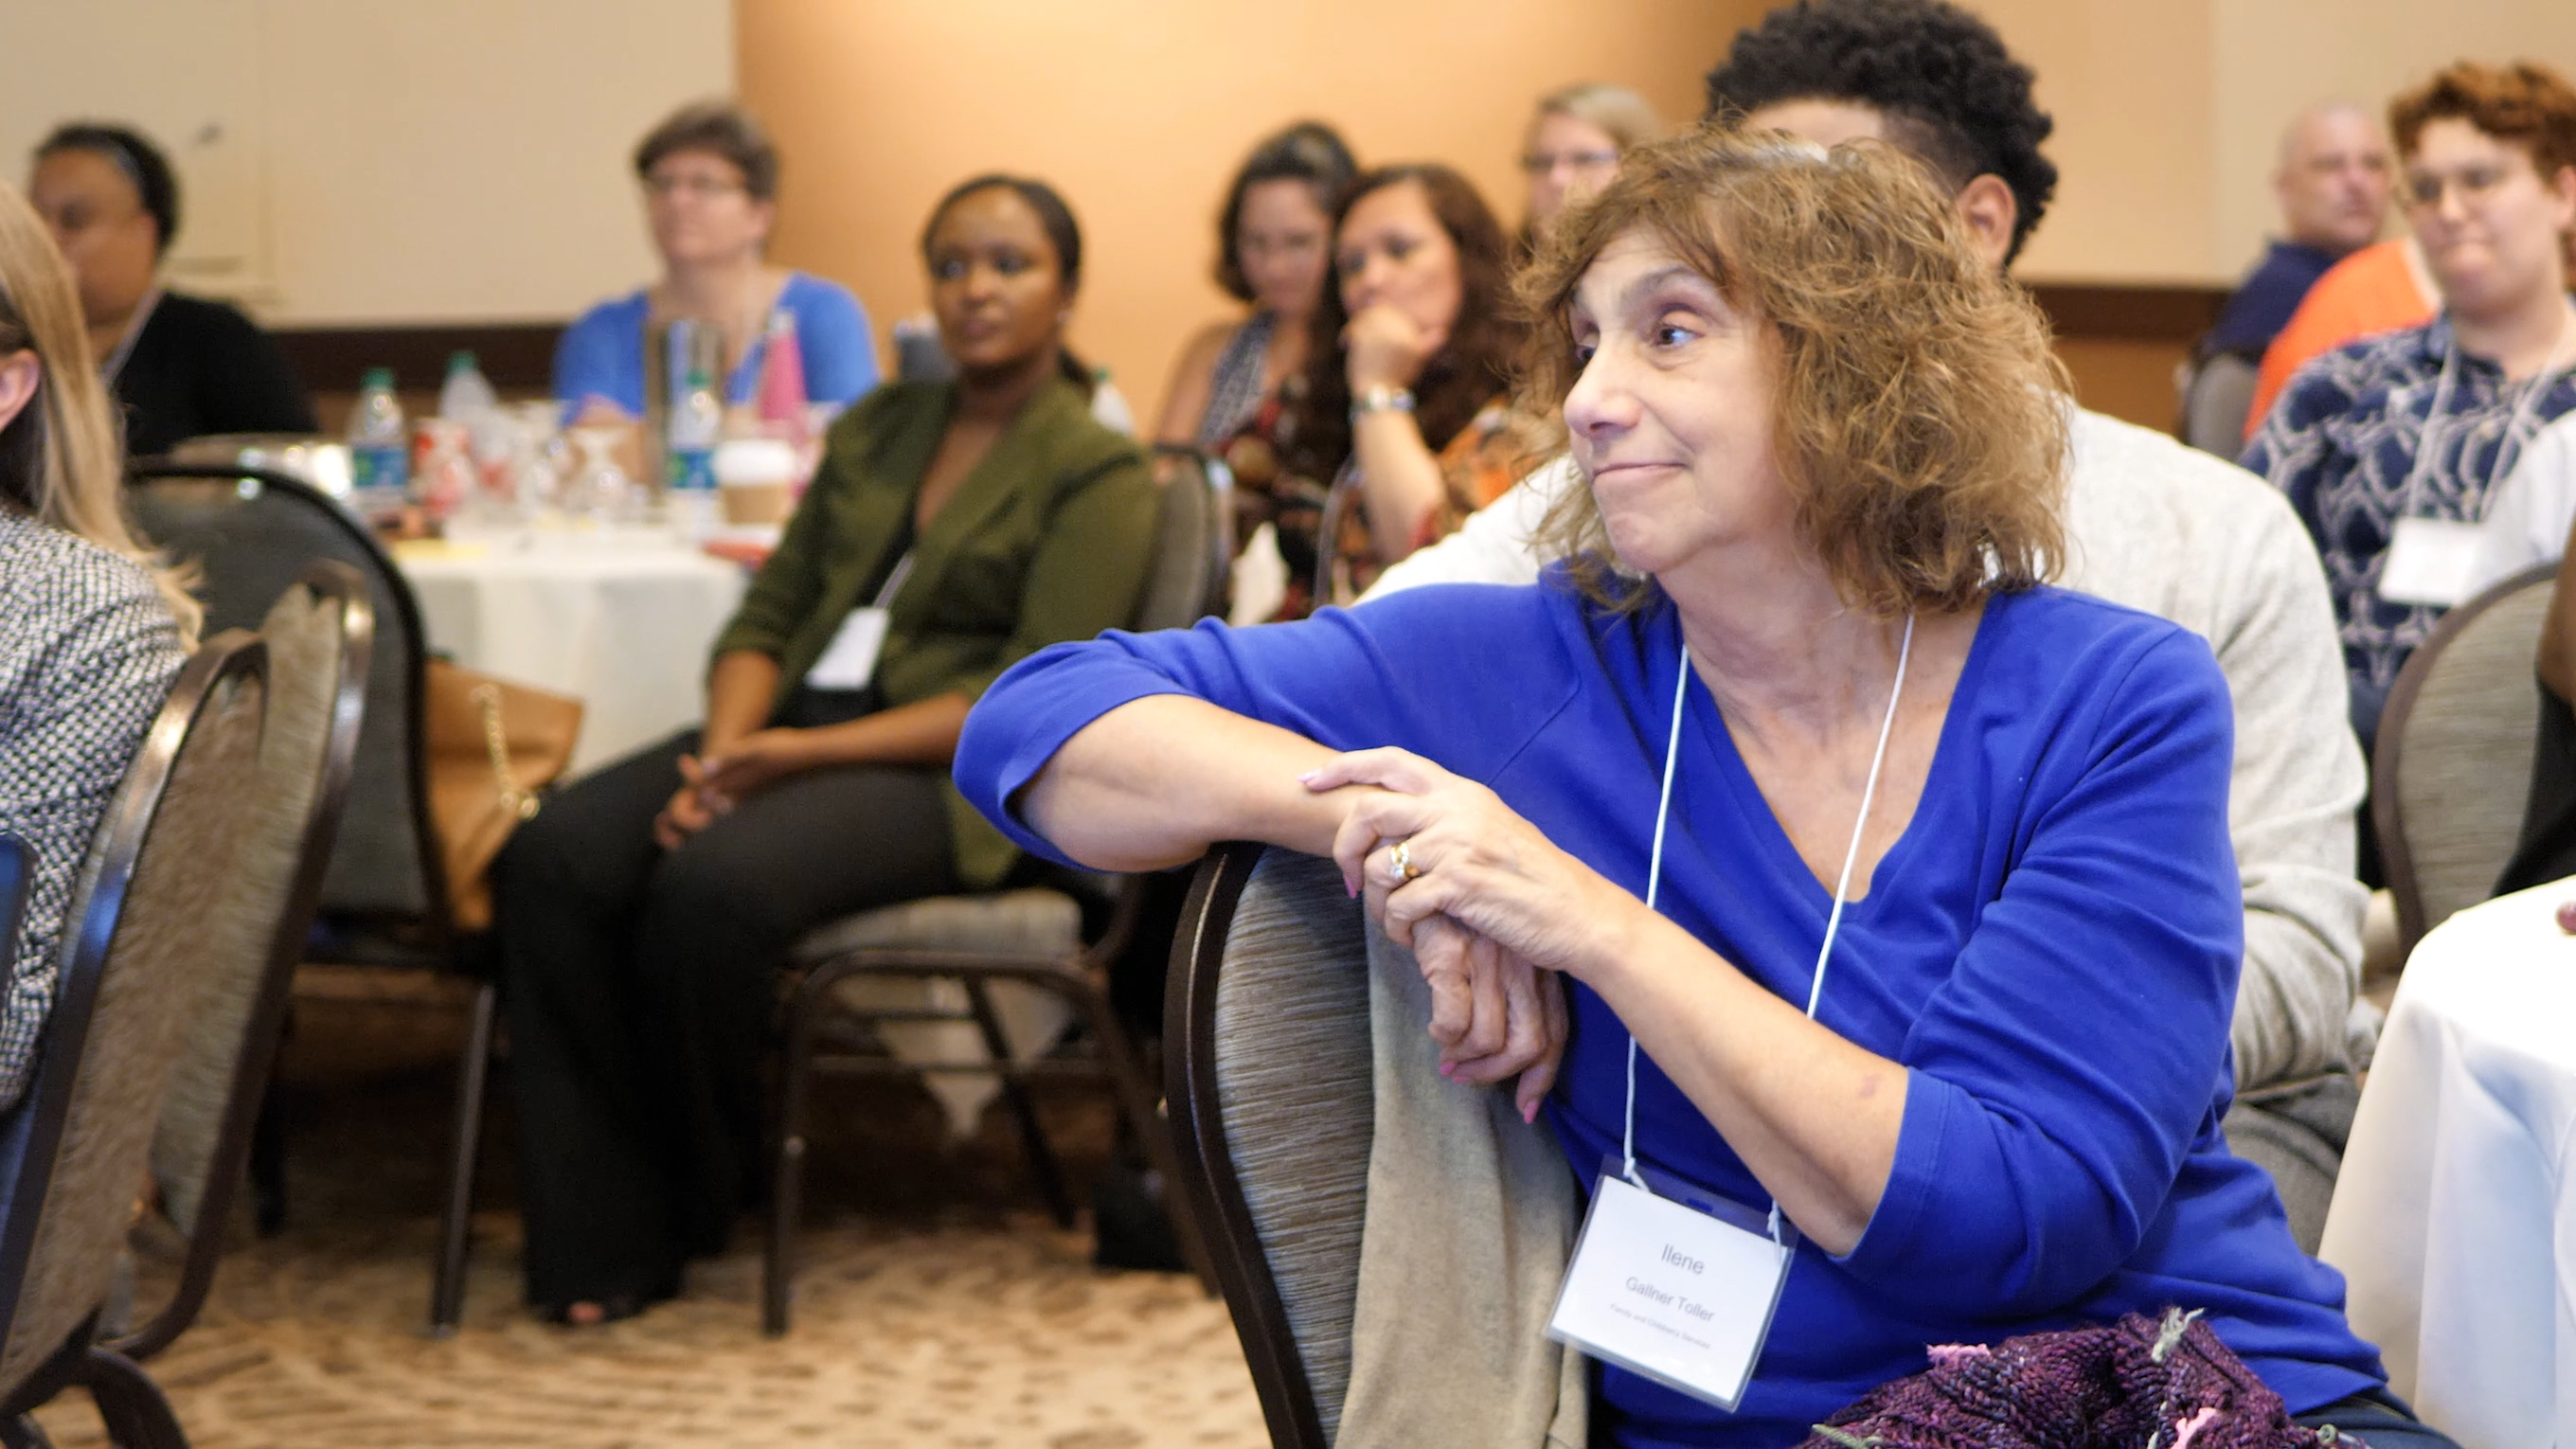 Woman listening to keynote speaker at 2018 conference.